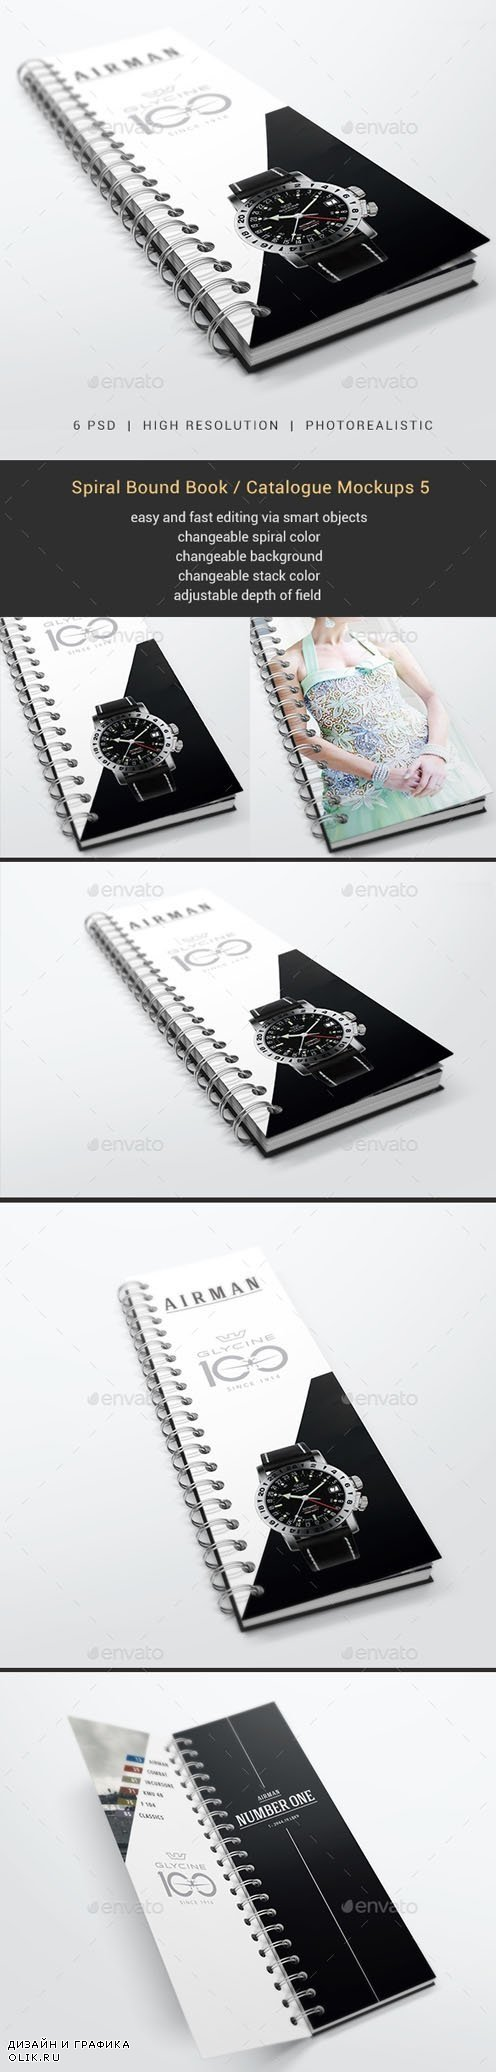 Spiral Bound Book / Catalogue Mockups 5 20218869